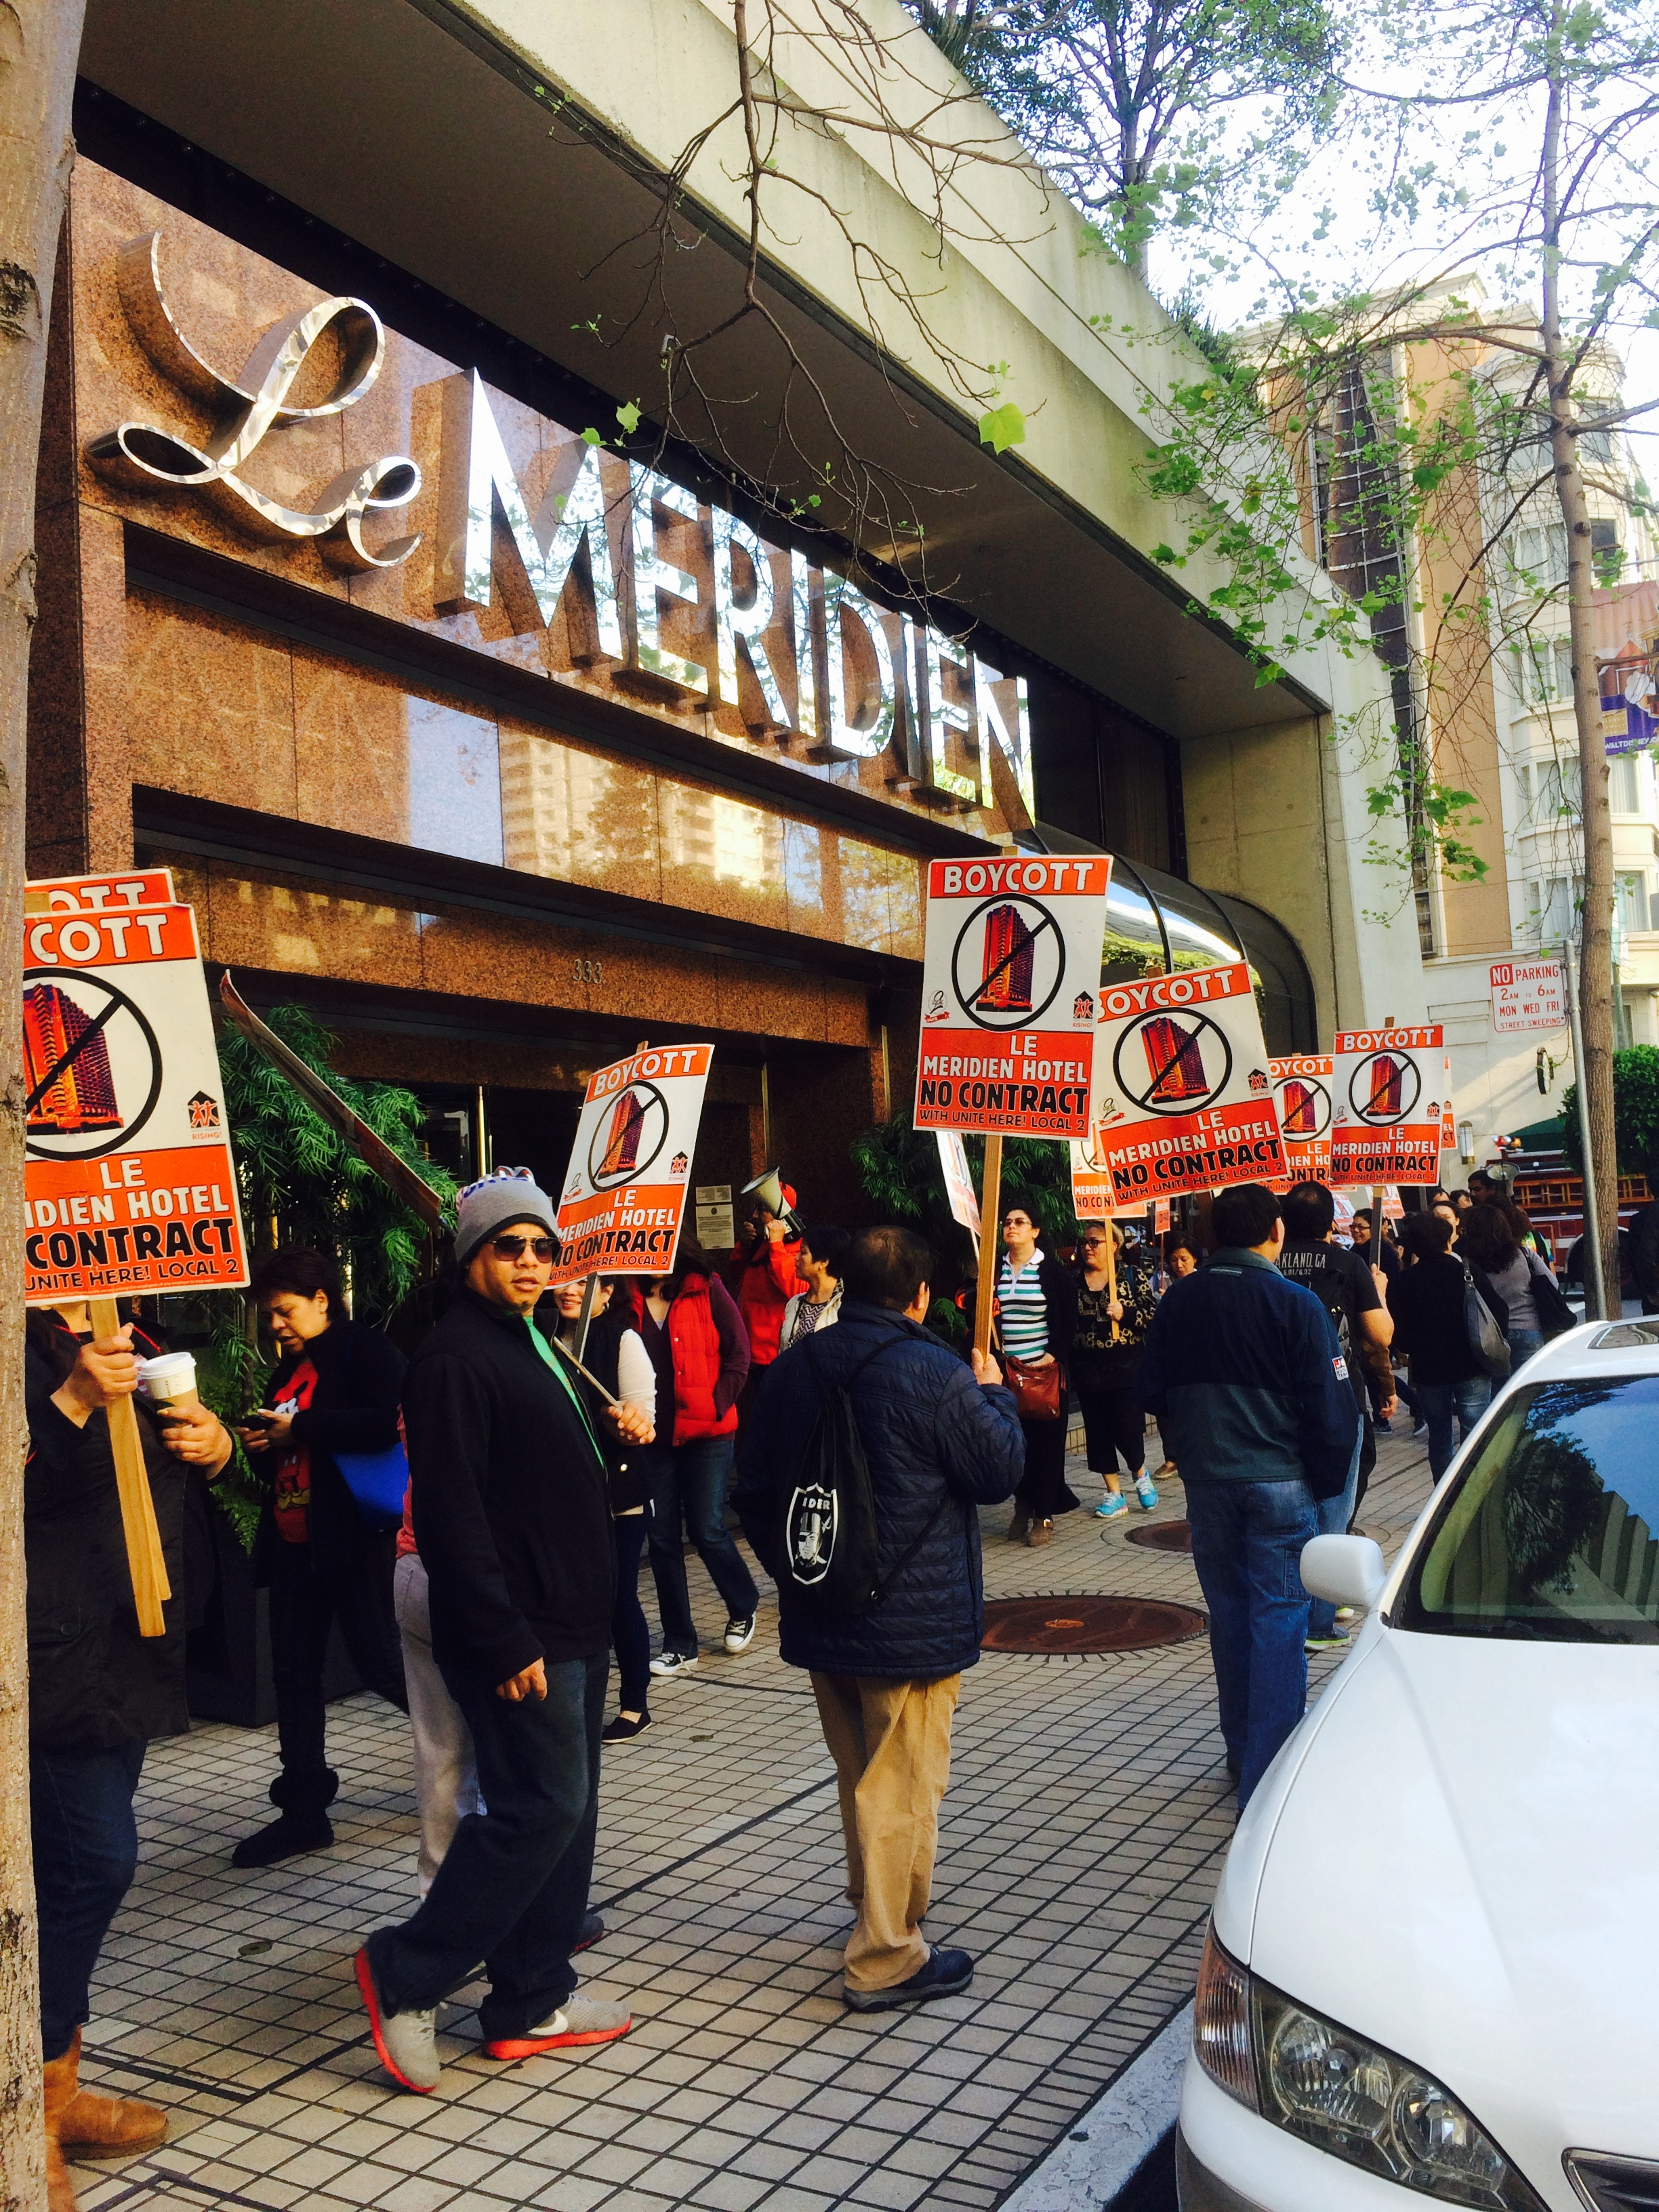 LARGE ACTION AT THE LE MERIDIEN